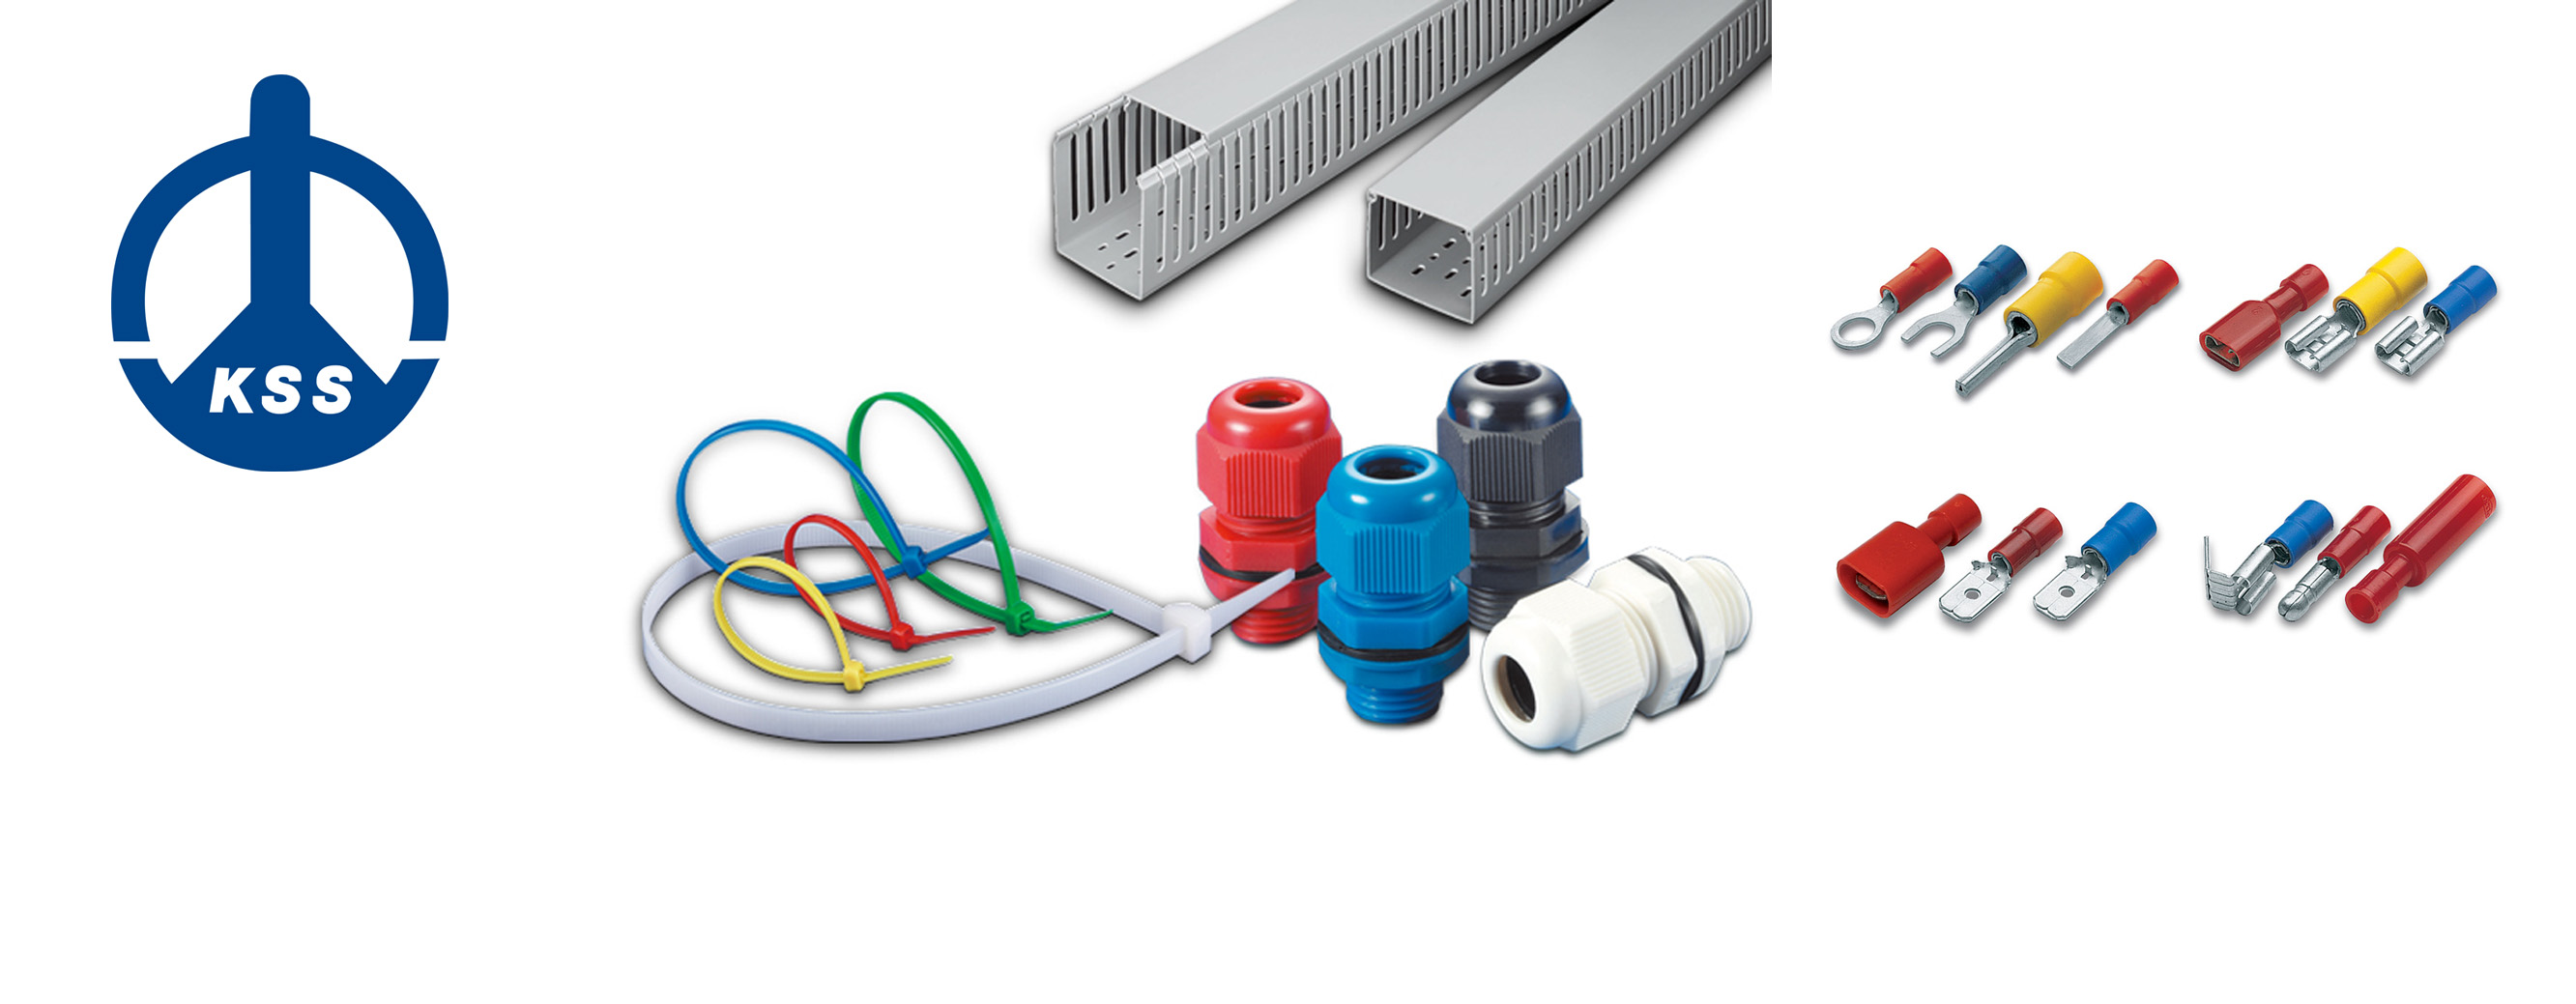 Elitco Electrical Lighting Co Llc Ge Motor Wiring A Pool Kai Suh Taiwan Products Ducts Cable Markers Ties Clampswire Connectors